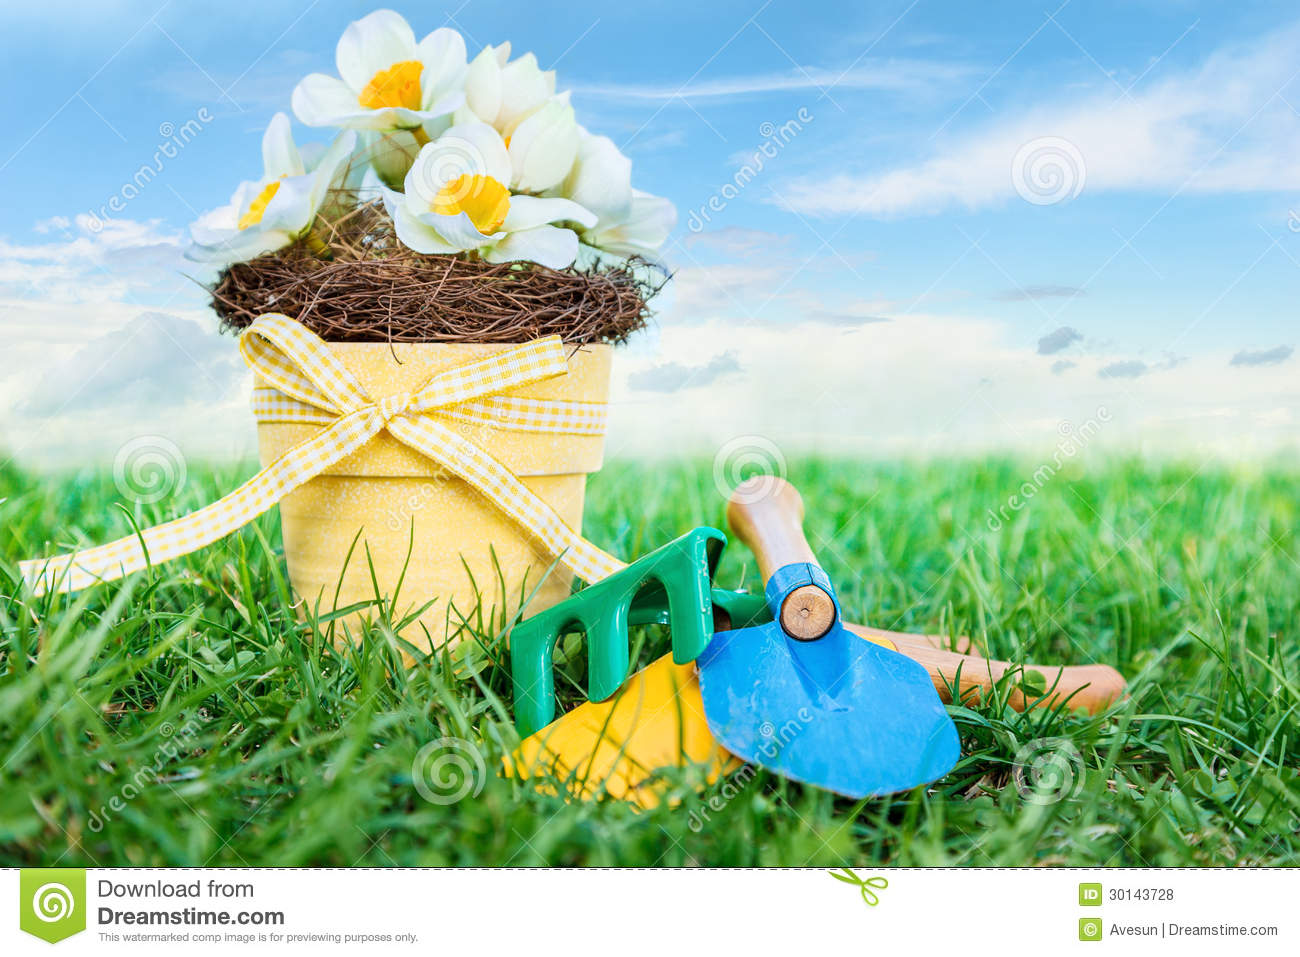 Garden Tools Royalty Free Stock Photos Image 30143728